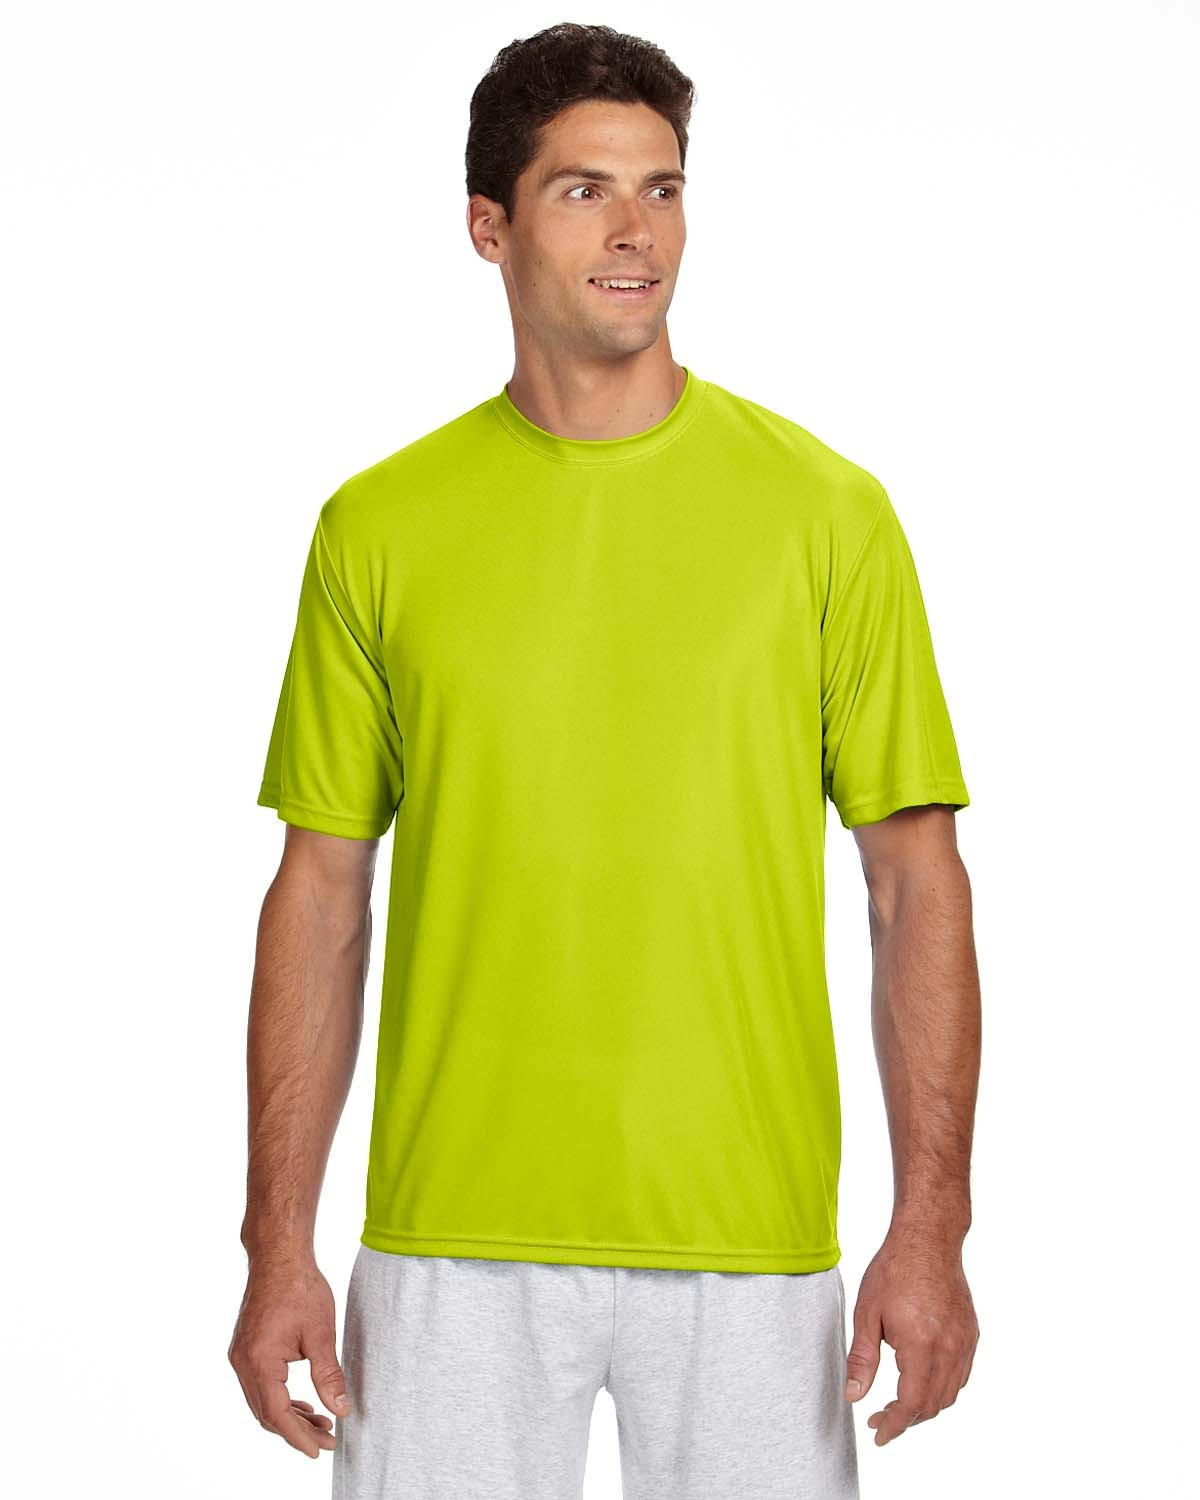 N3142 A4 Apparel SAFETY YELLOW